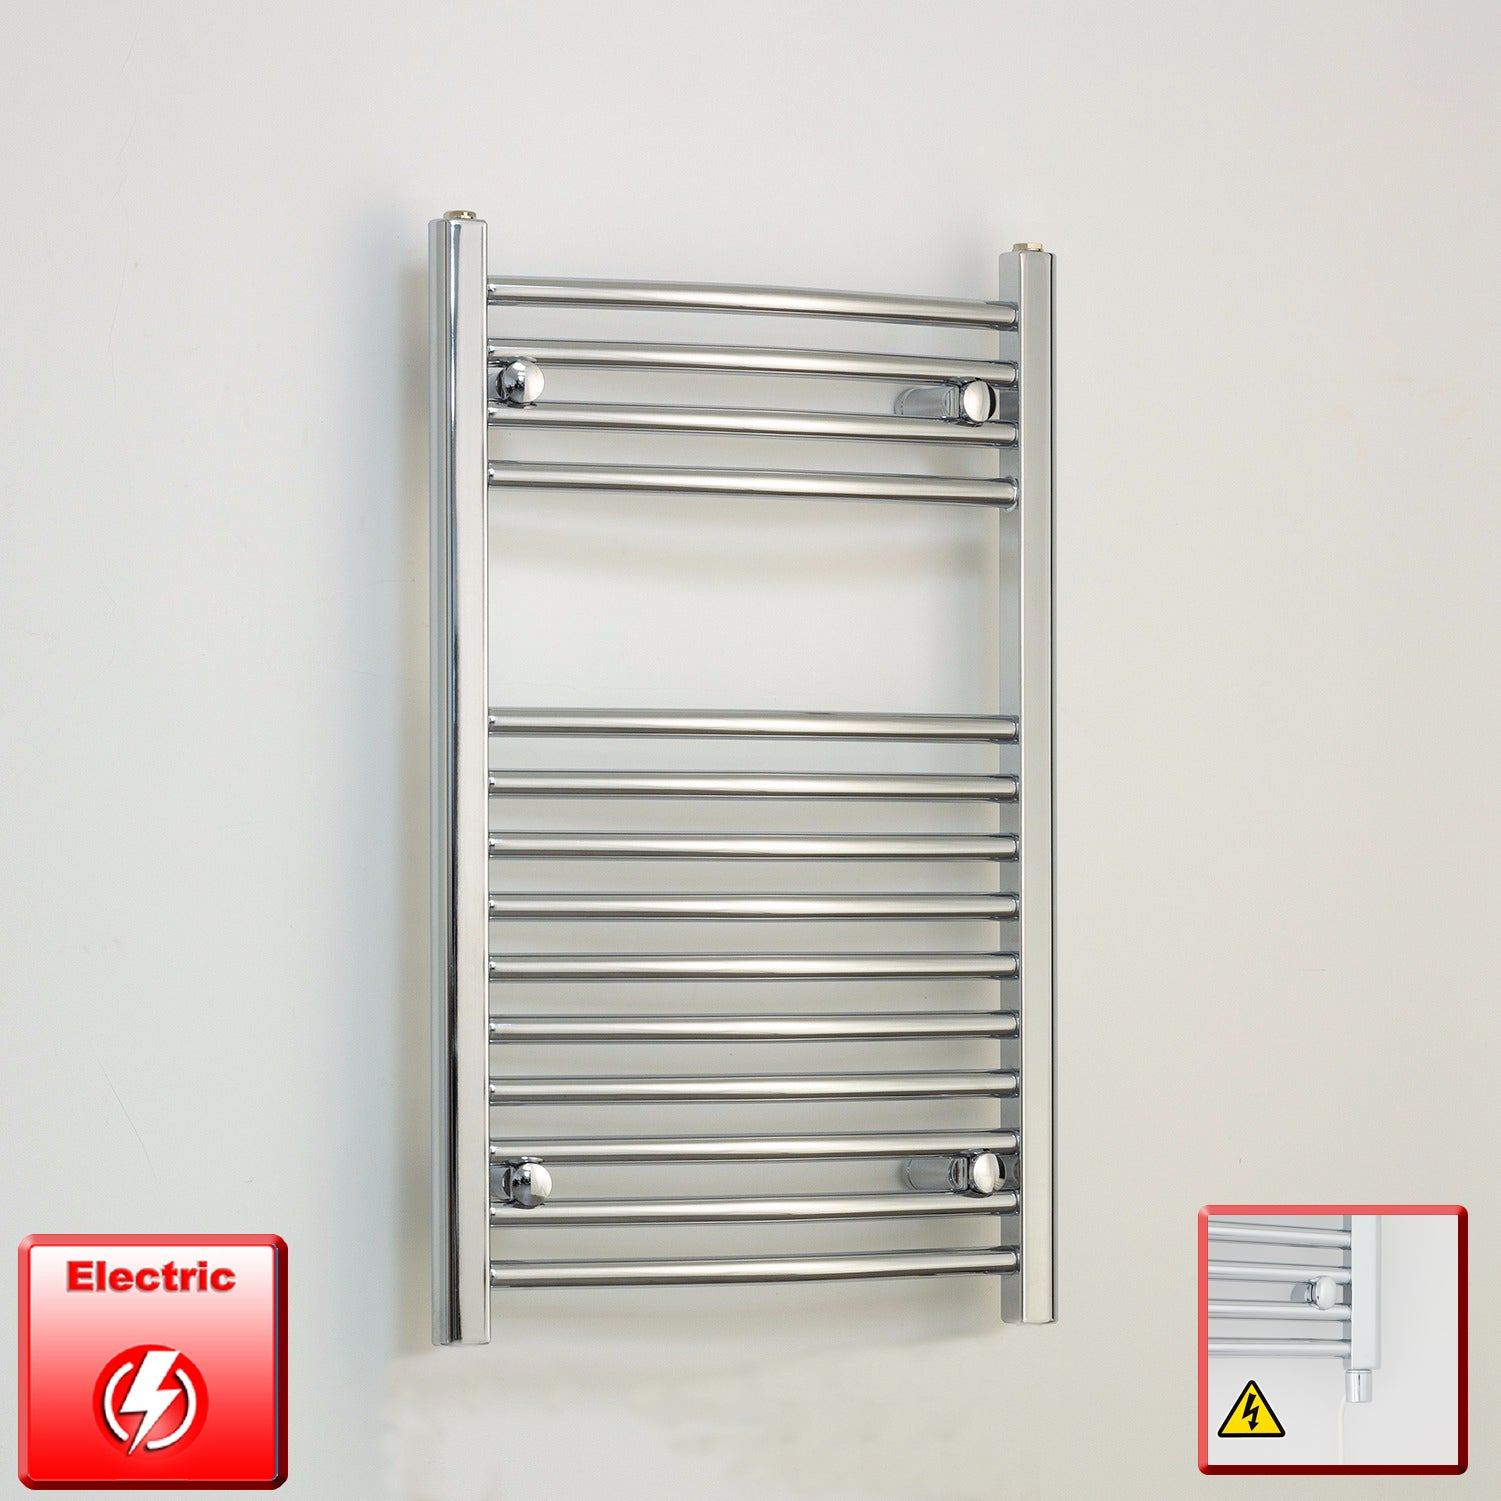 500mm Wide 800mm High Flat Or Curved Chrome Pre-Filled Electric Heated Towel Rail Radiator HTR,Straight / Single Heat Element